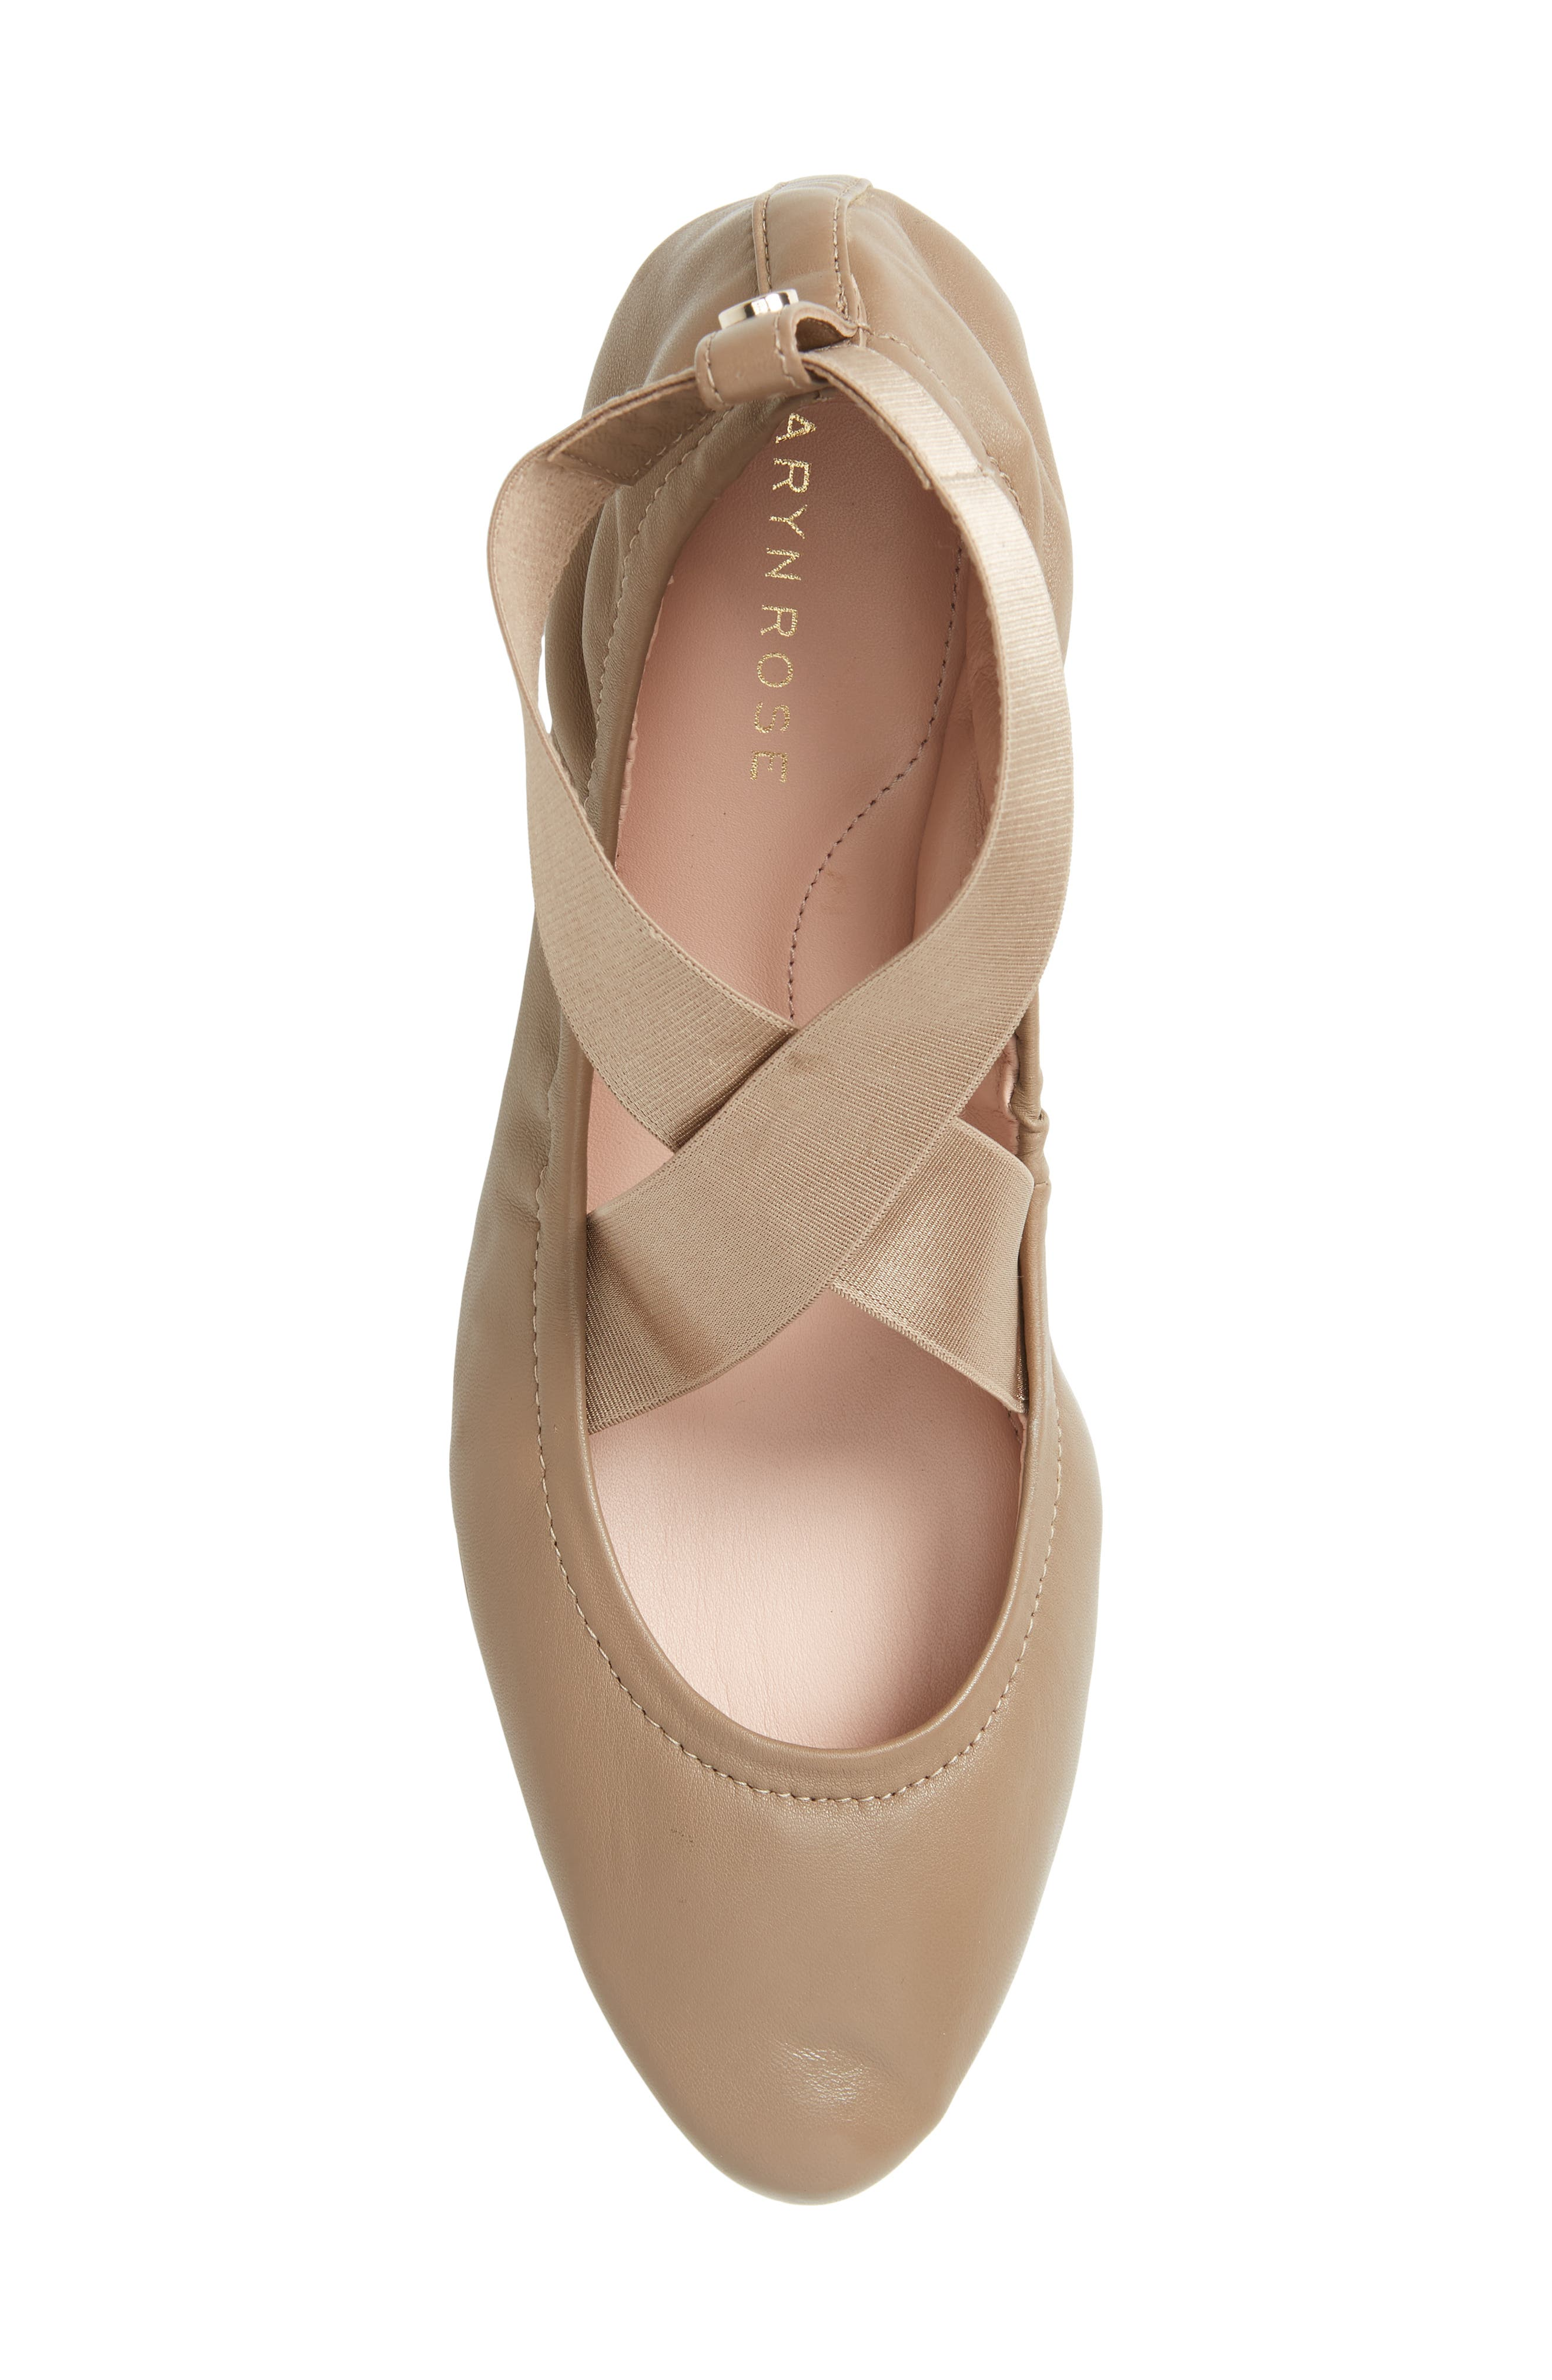 Edina Strappy Ballet Flat,                             Alternate thumbnail 5, color,                             260